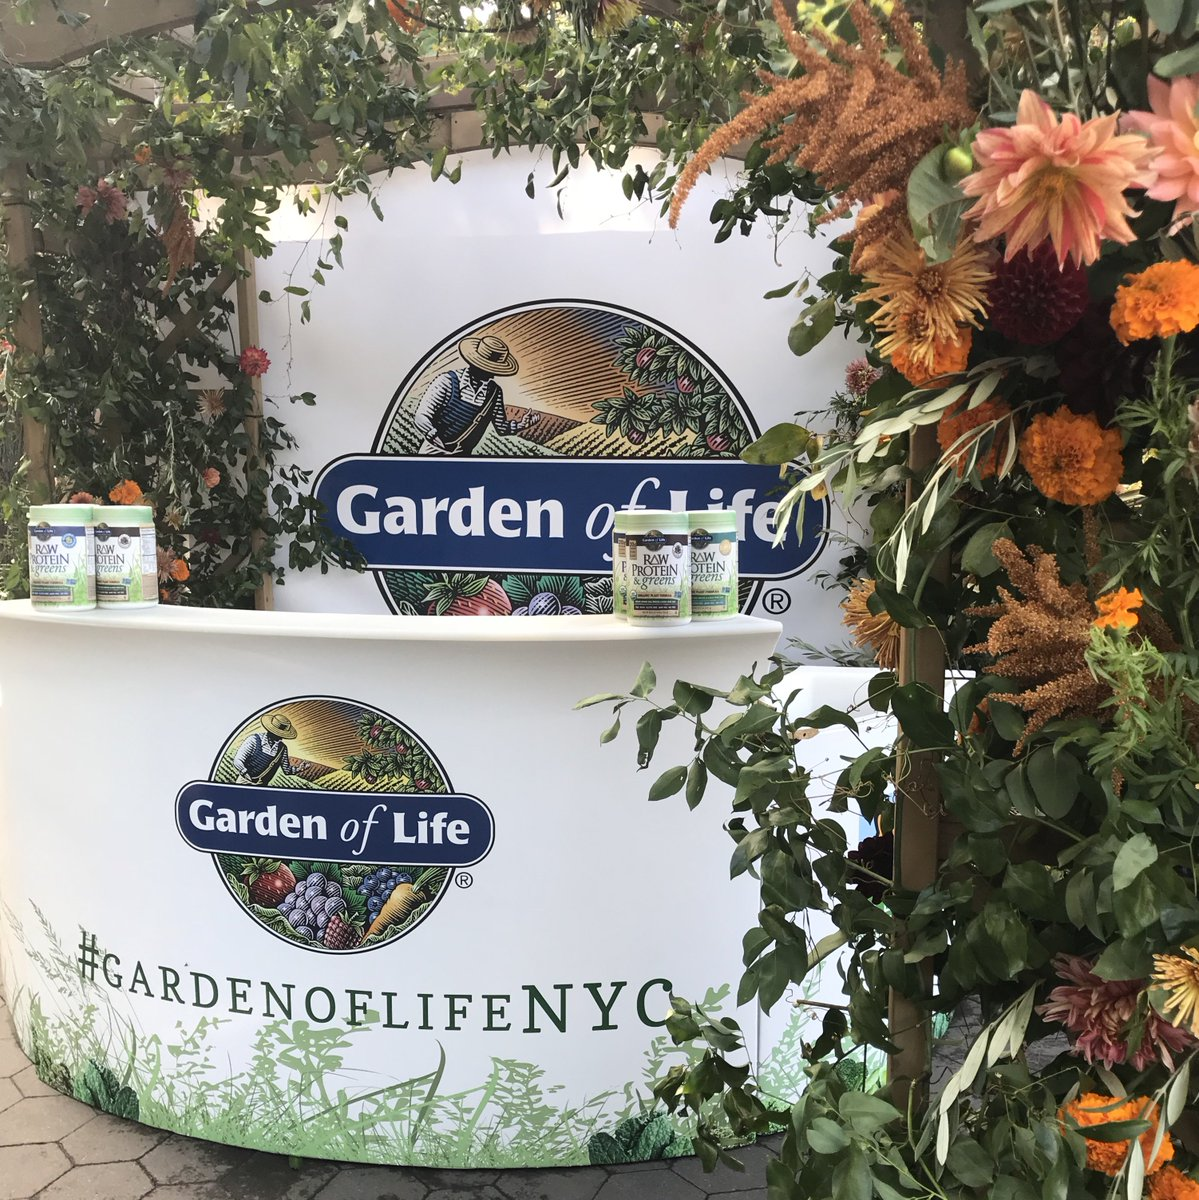 We had a blast at #GardenofLifeNYC with @RobynOBrienUSA and #client @GardenofLiferaw, handing out samples of Raw Organic Protein powder!